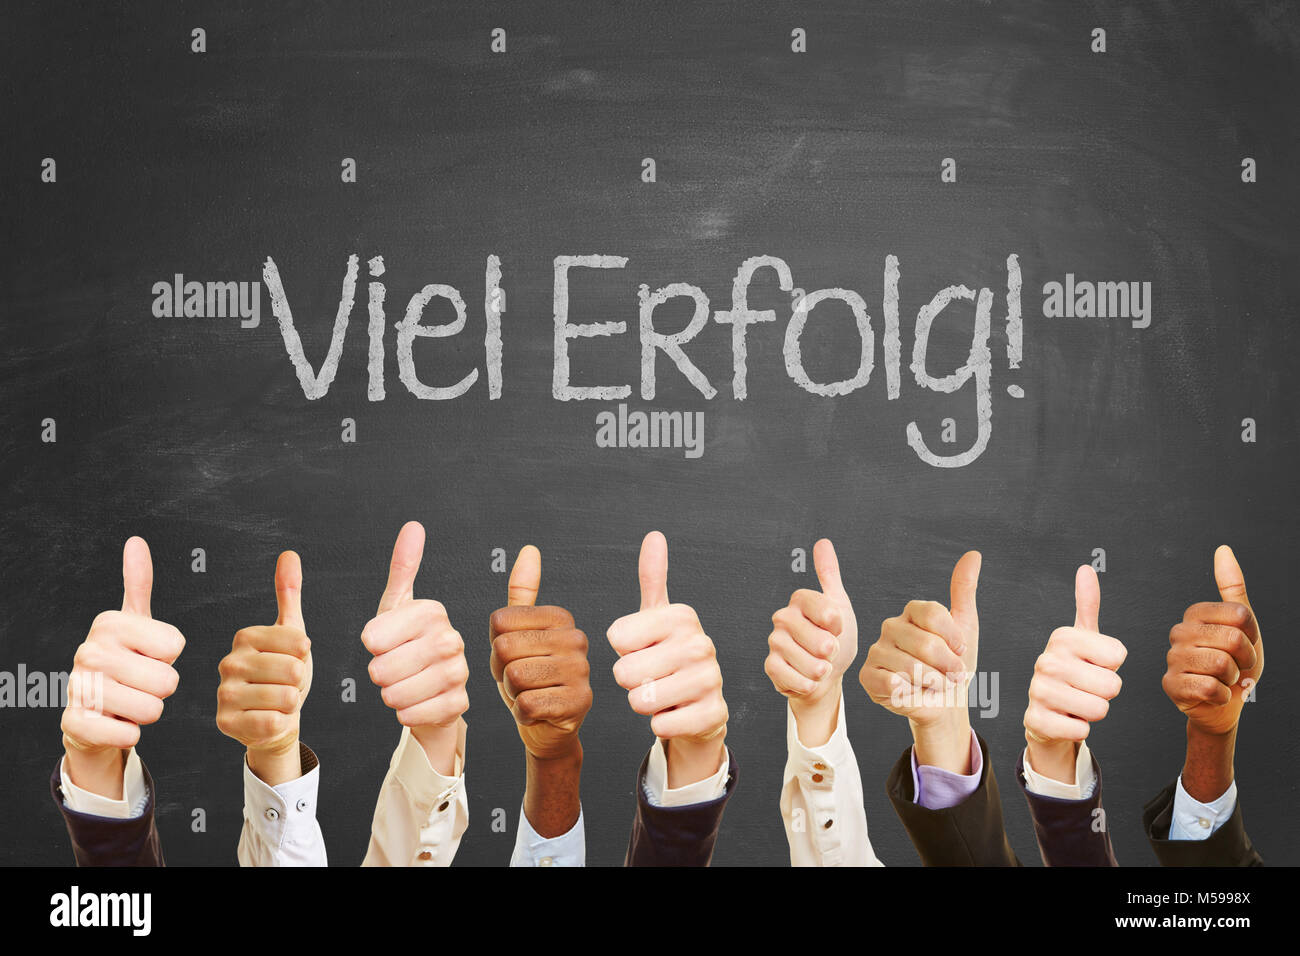 German text 'Viel Glueck' (Goog luck!) on a blackboard with thumbs up - Stock Image